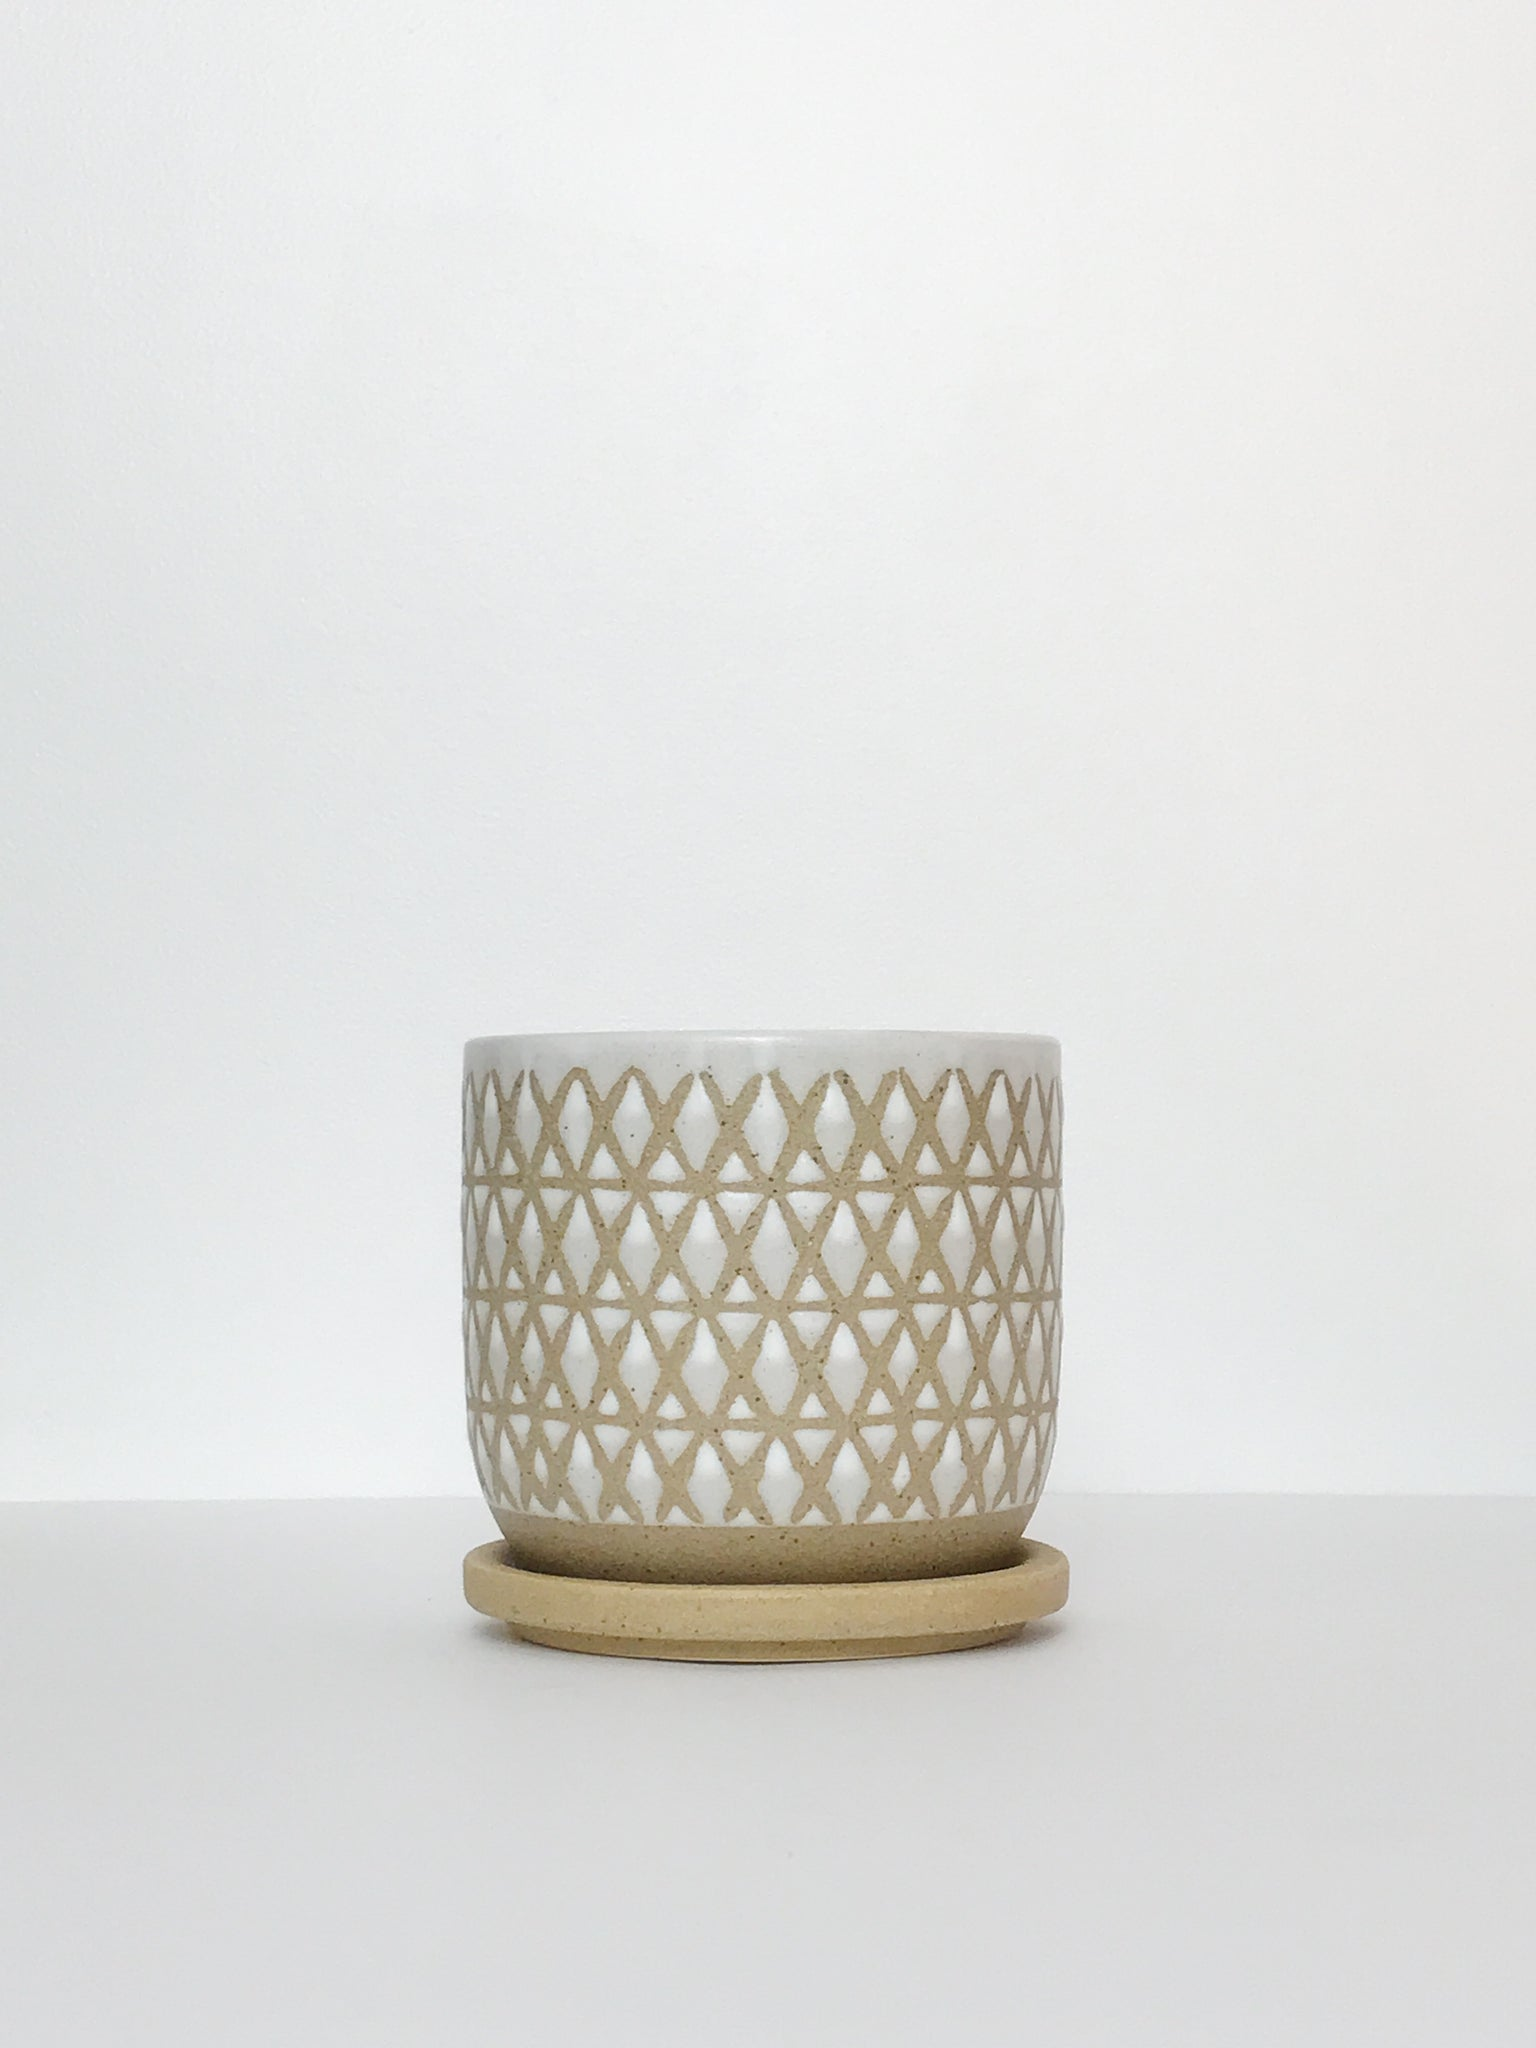 Textured Glazed Planter w/ Attached Drain Dish